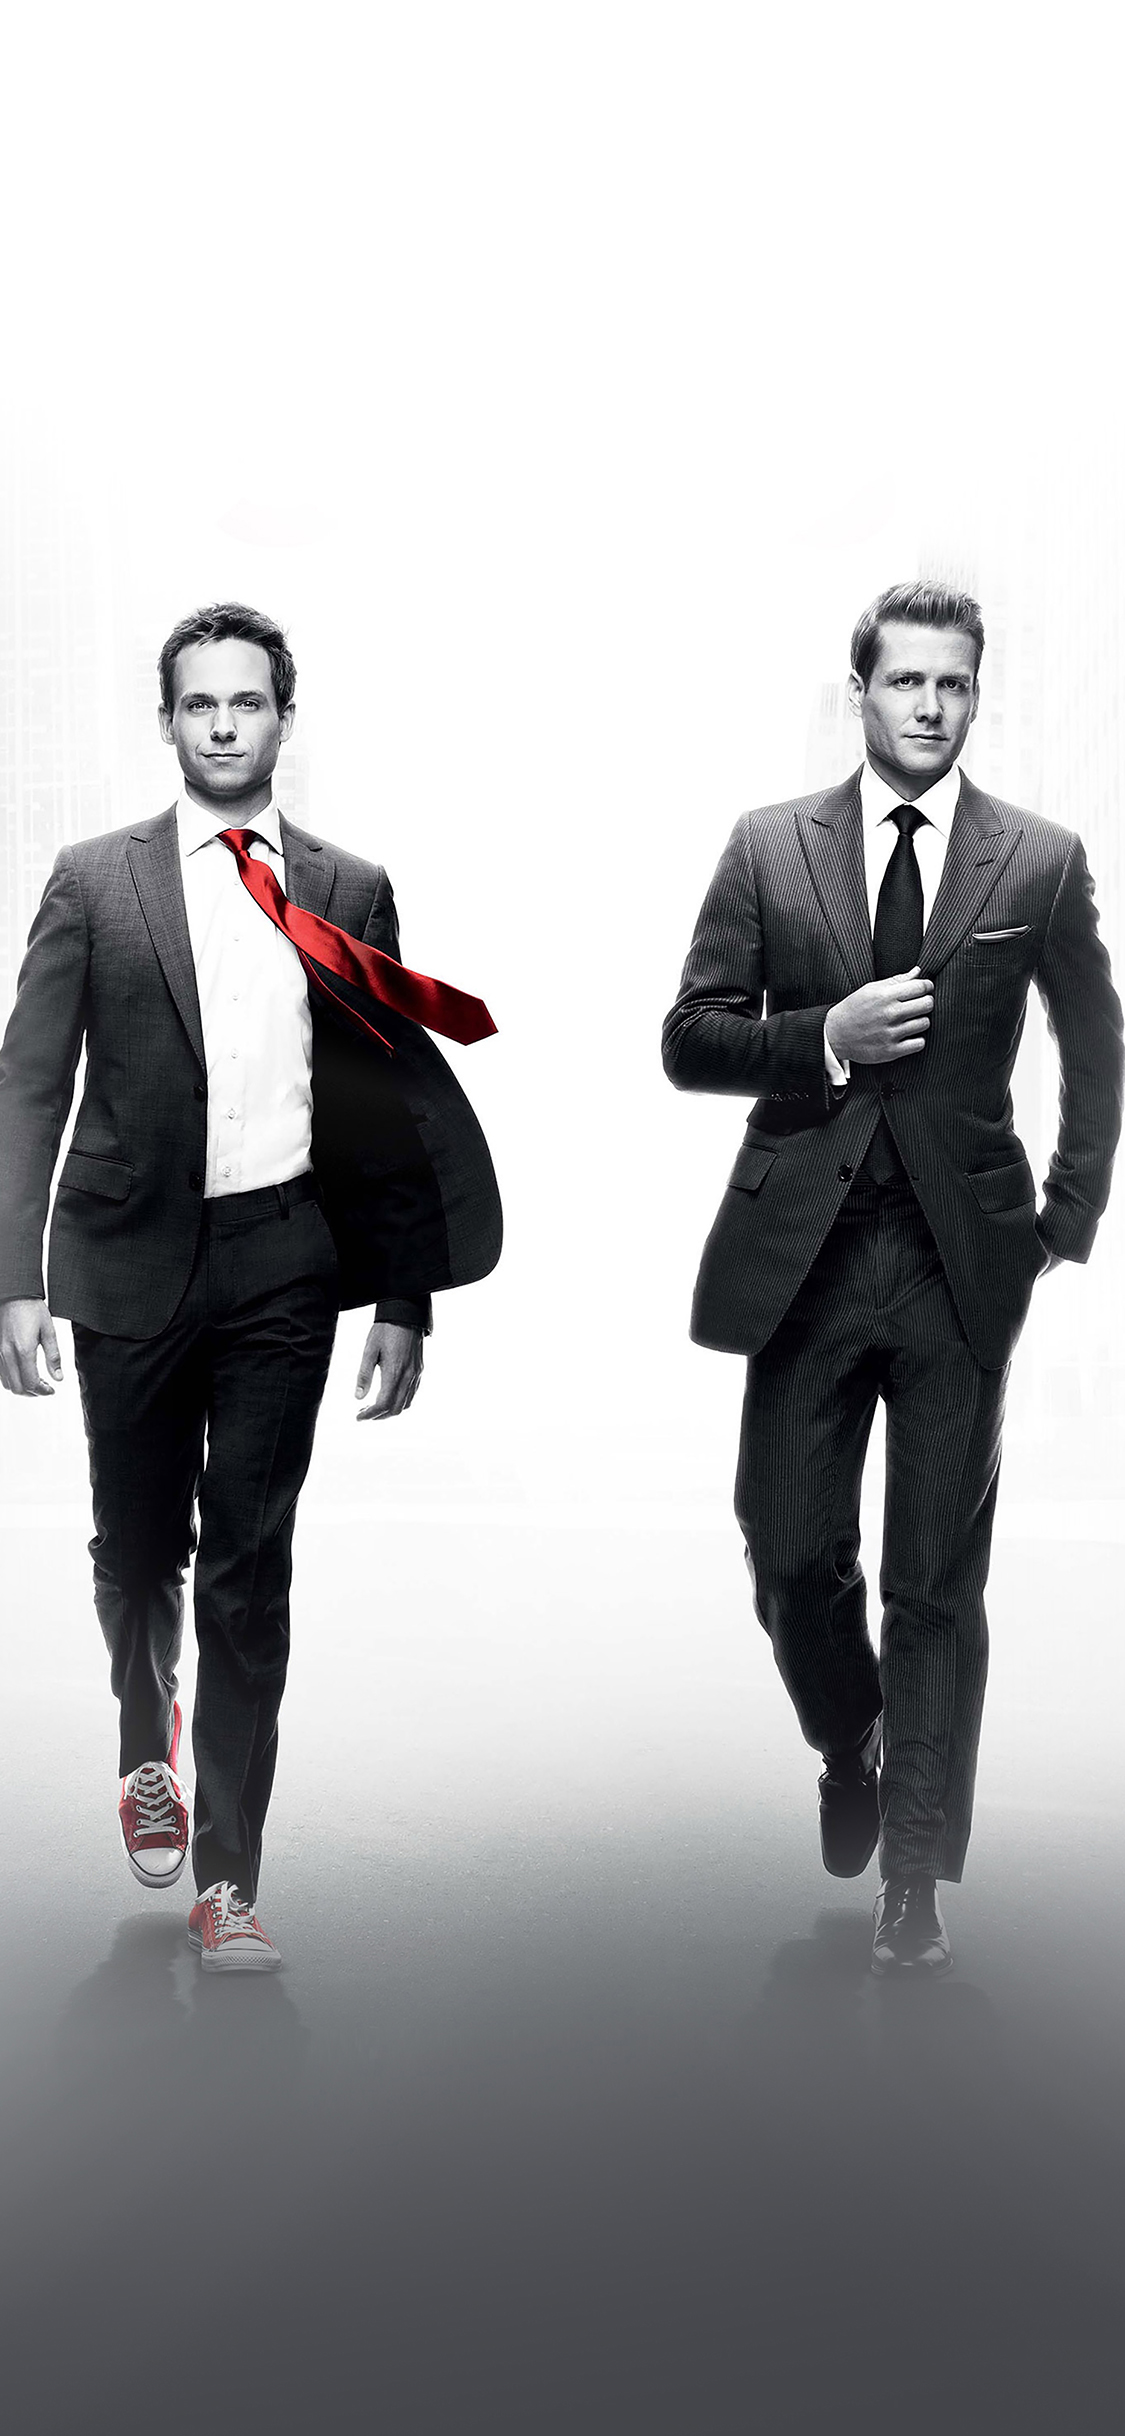 iPhoneXpapers.com-Apple-iPhone-wallpaper-hc24-suits-drama-film-actors